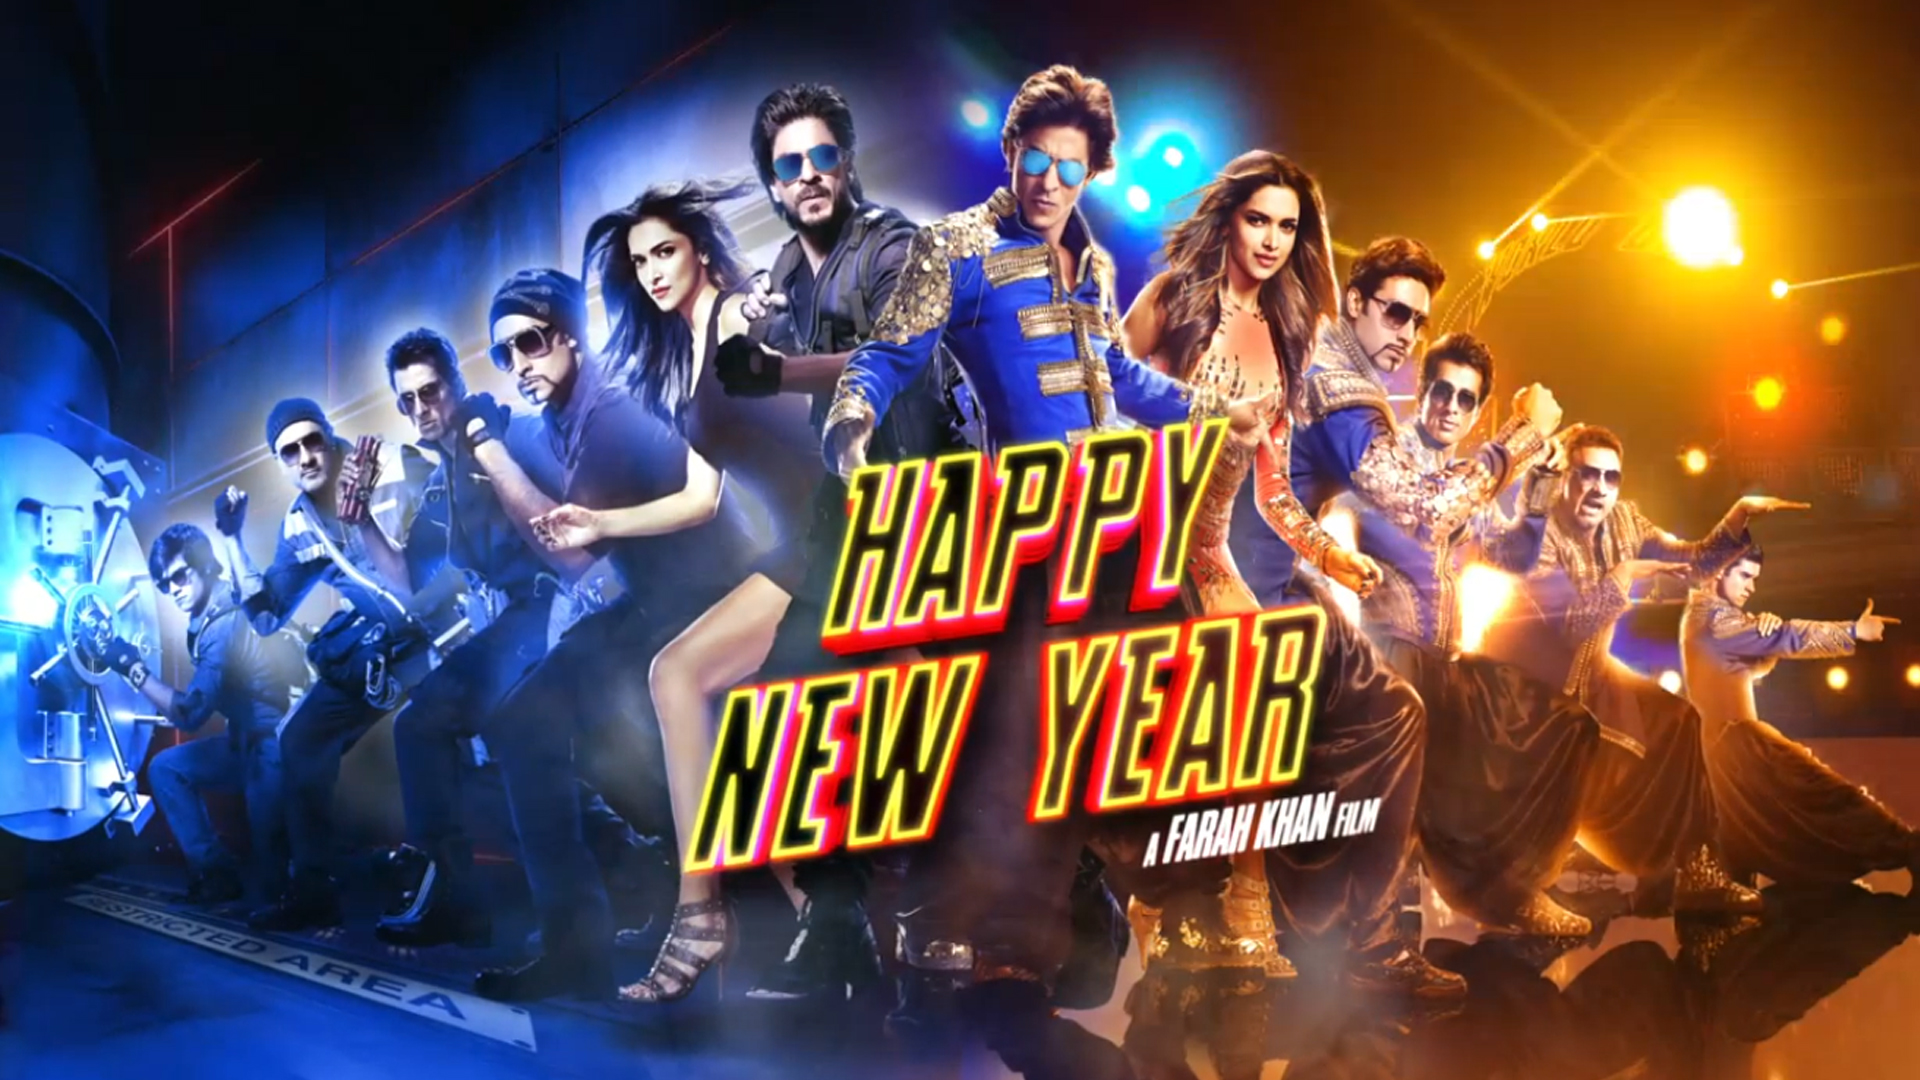 Happy New Year Movie HD Wallpaper